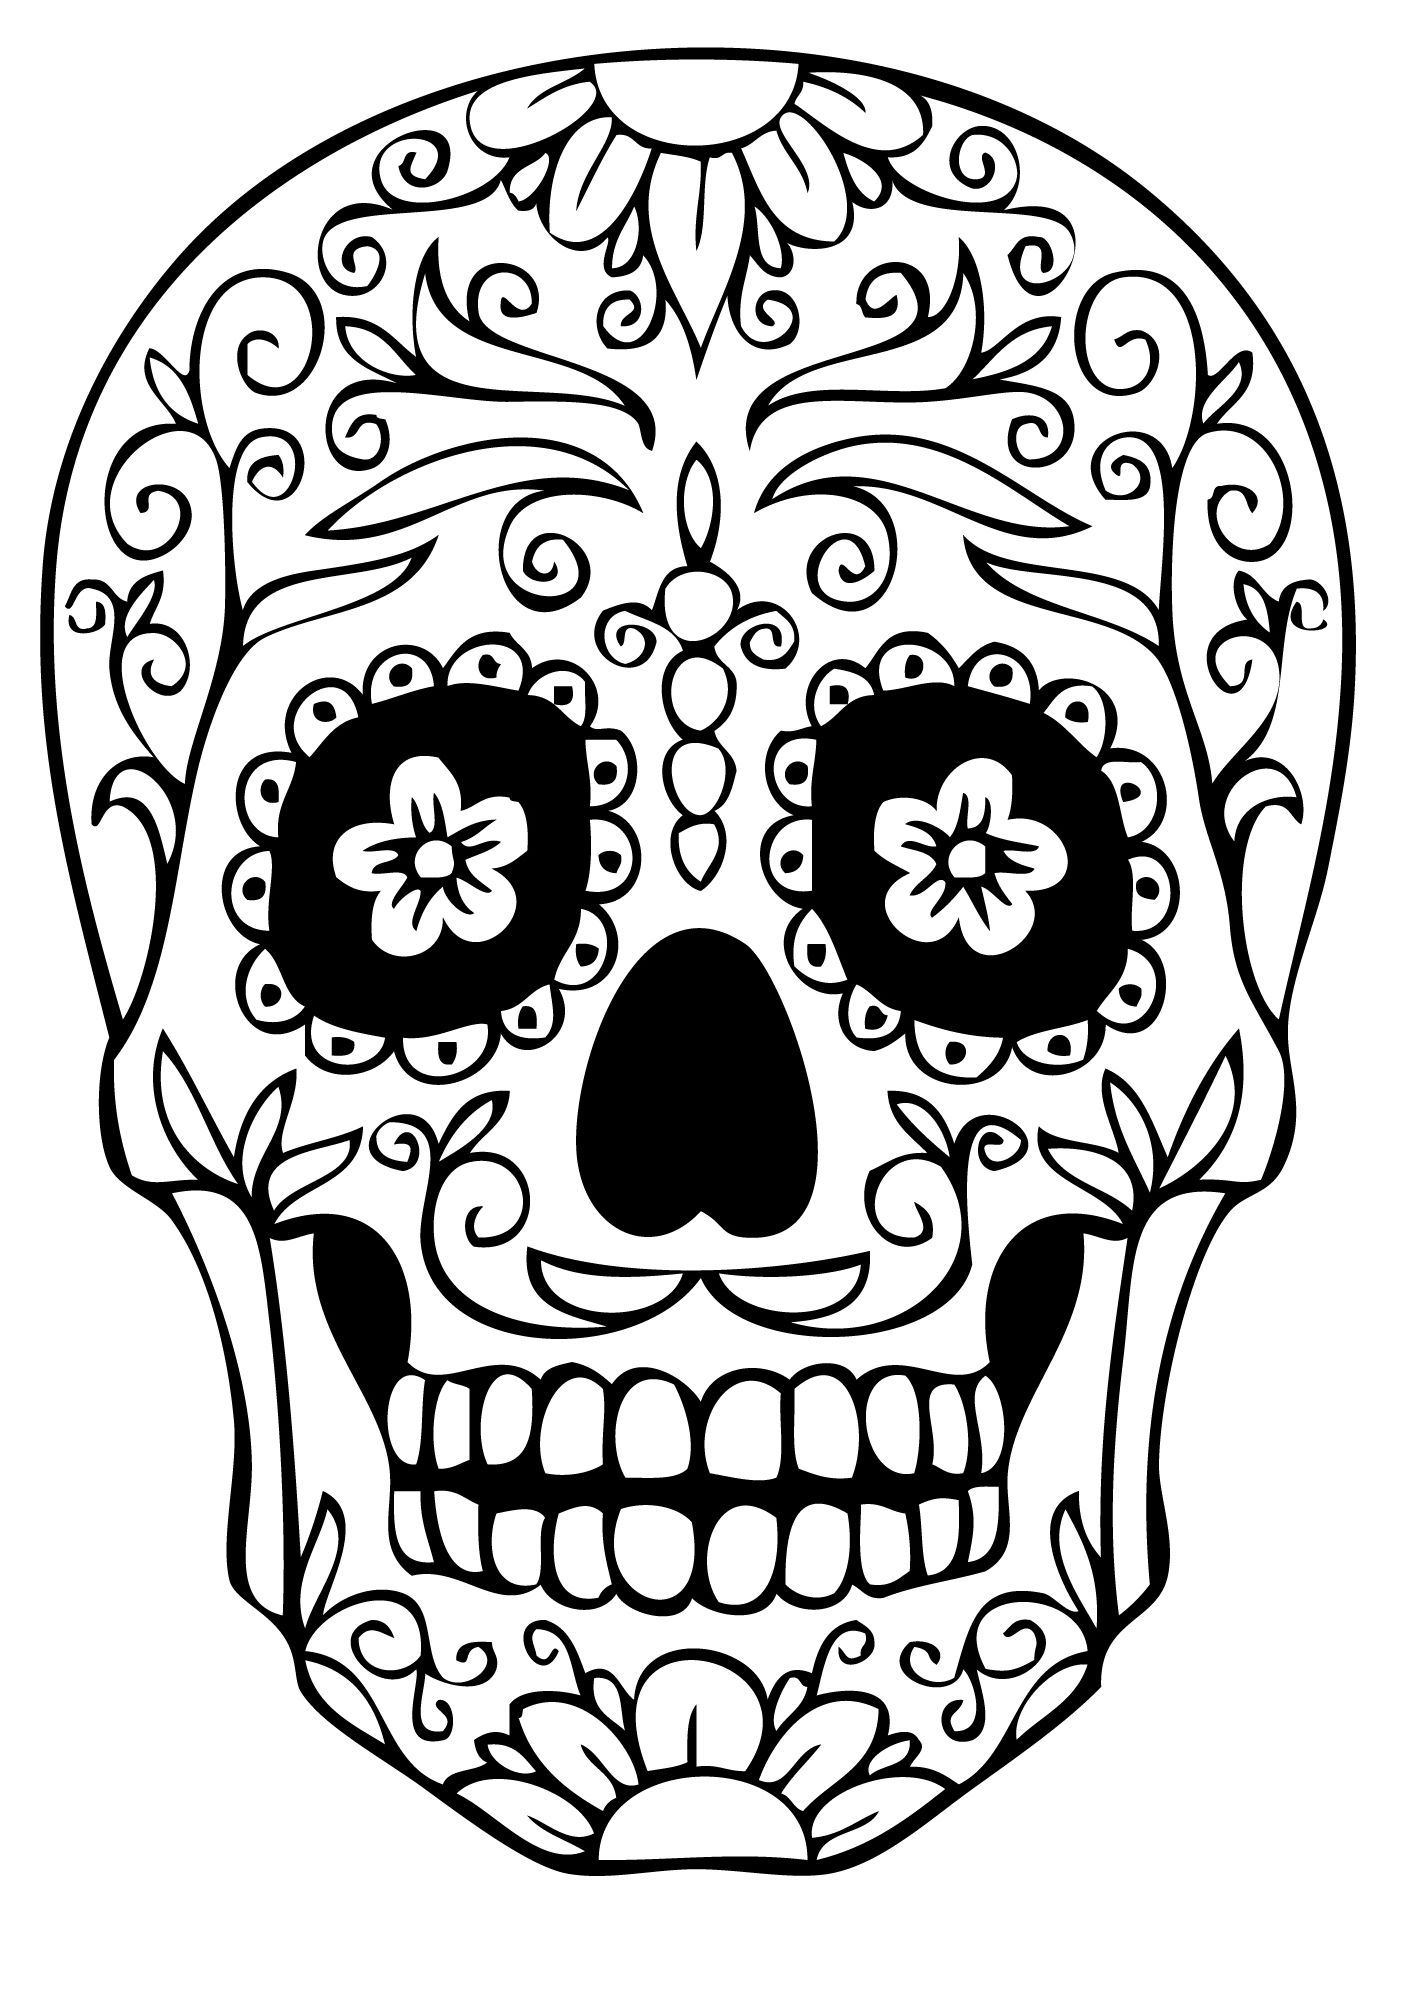 Printable Skull Coloring Pages Ideas | Skull coloring ...